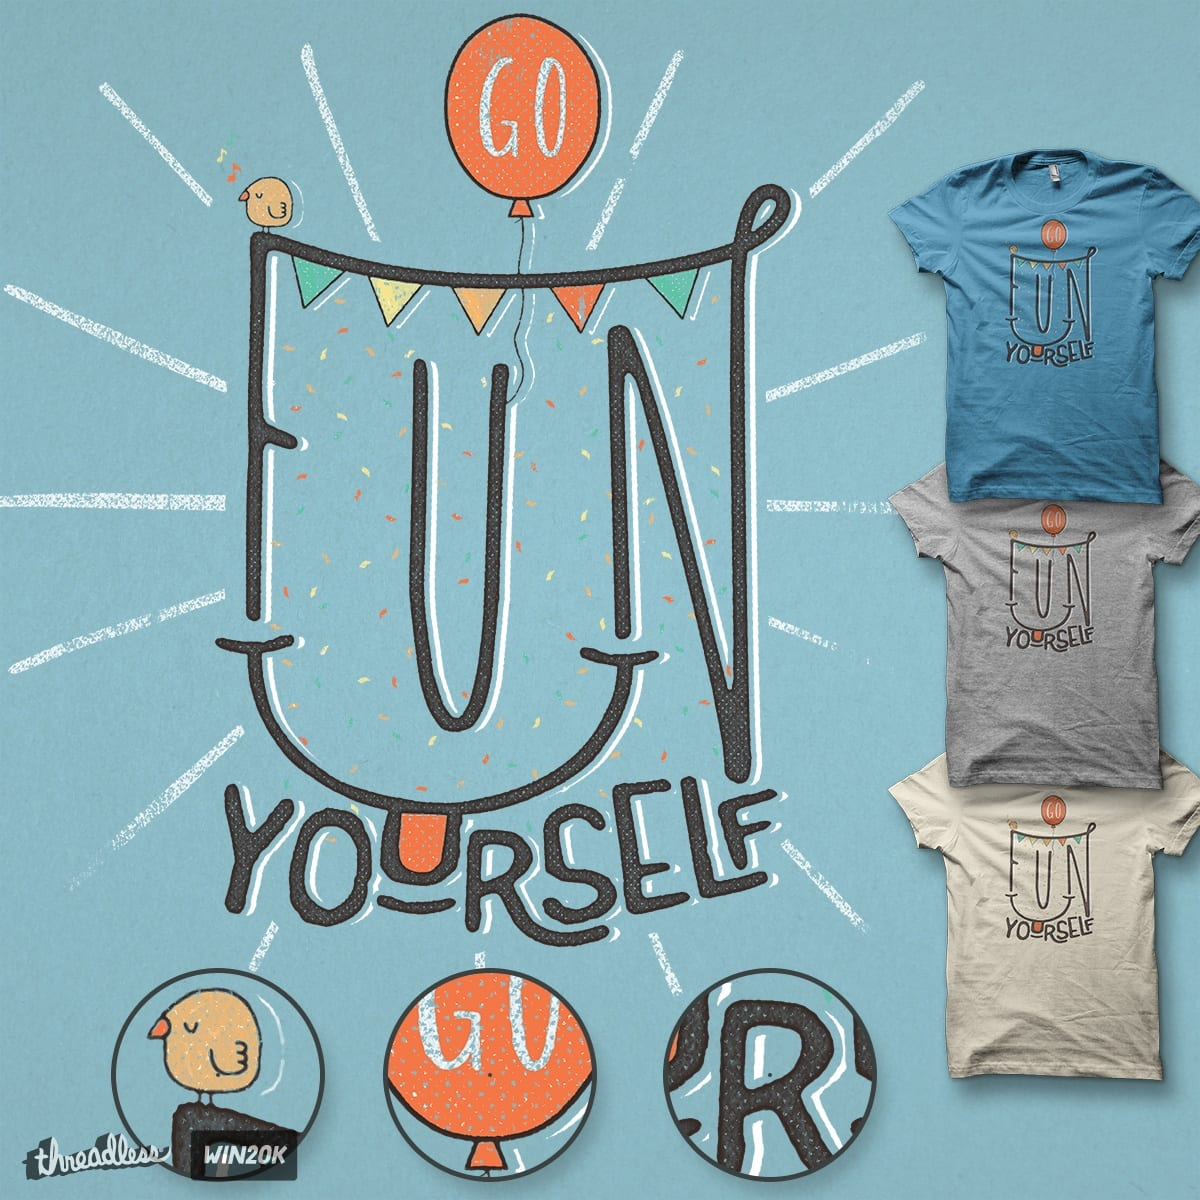 Go fu* yourself ;) by Tompe on Threadless